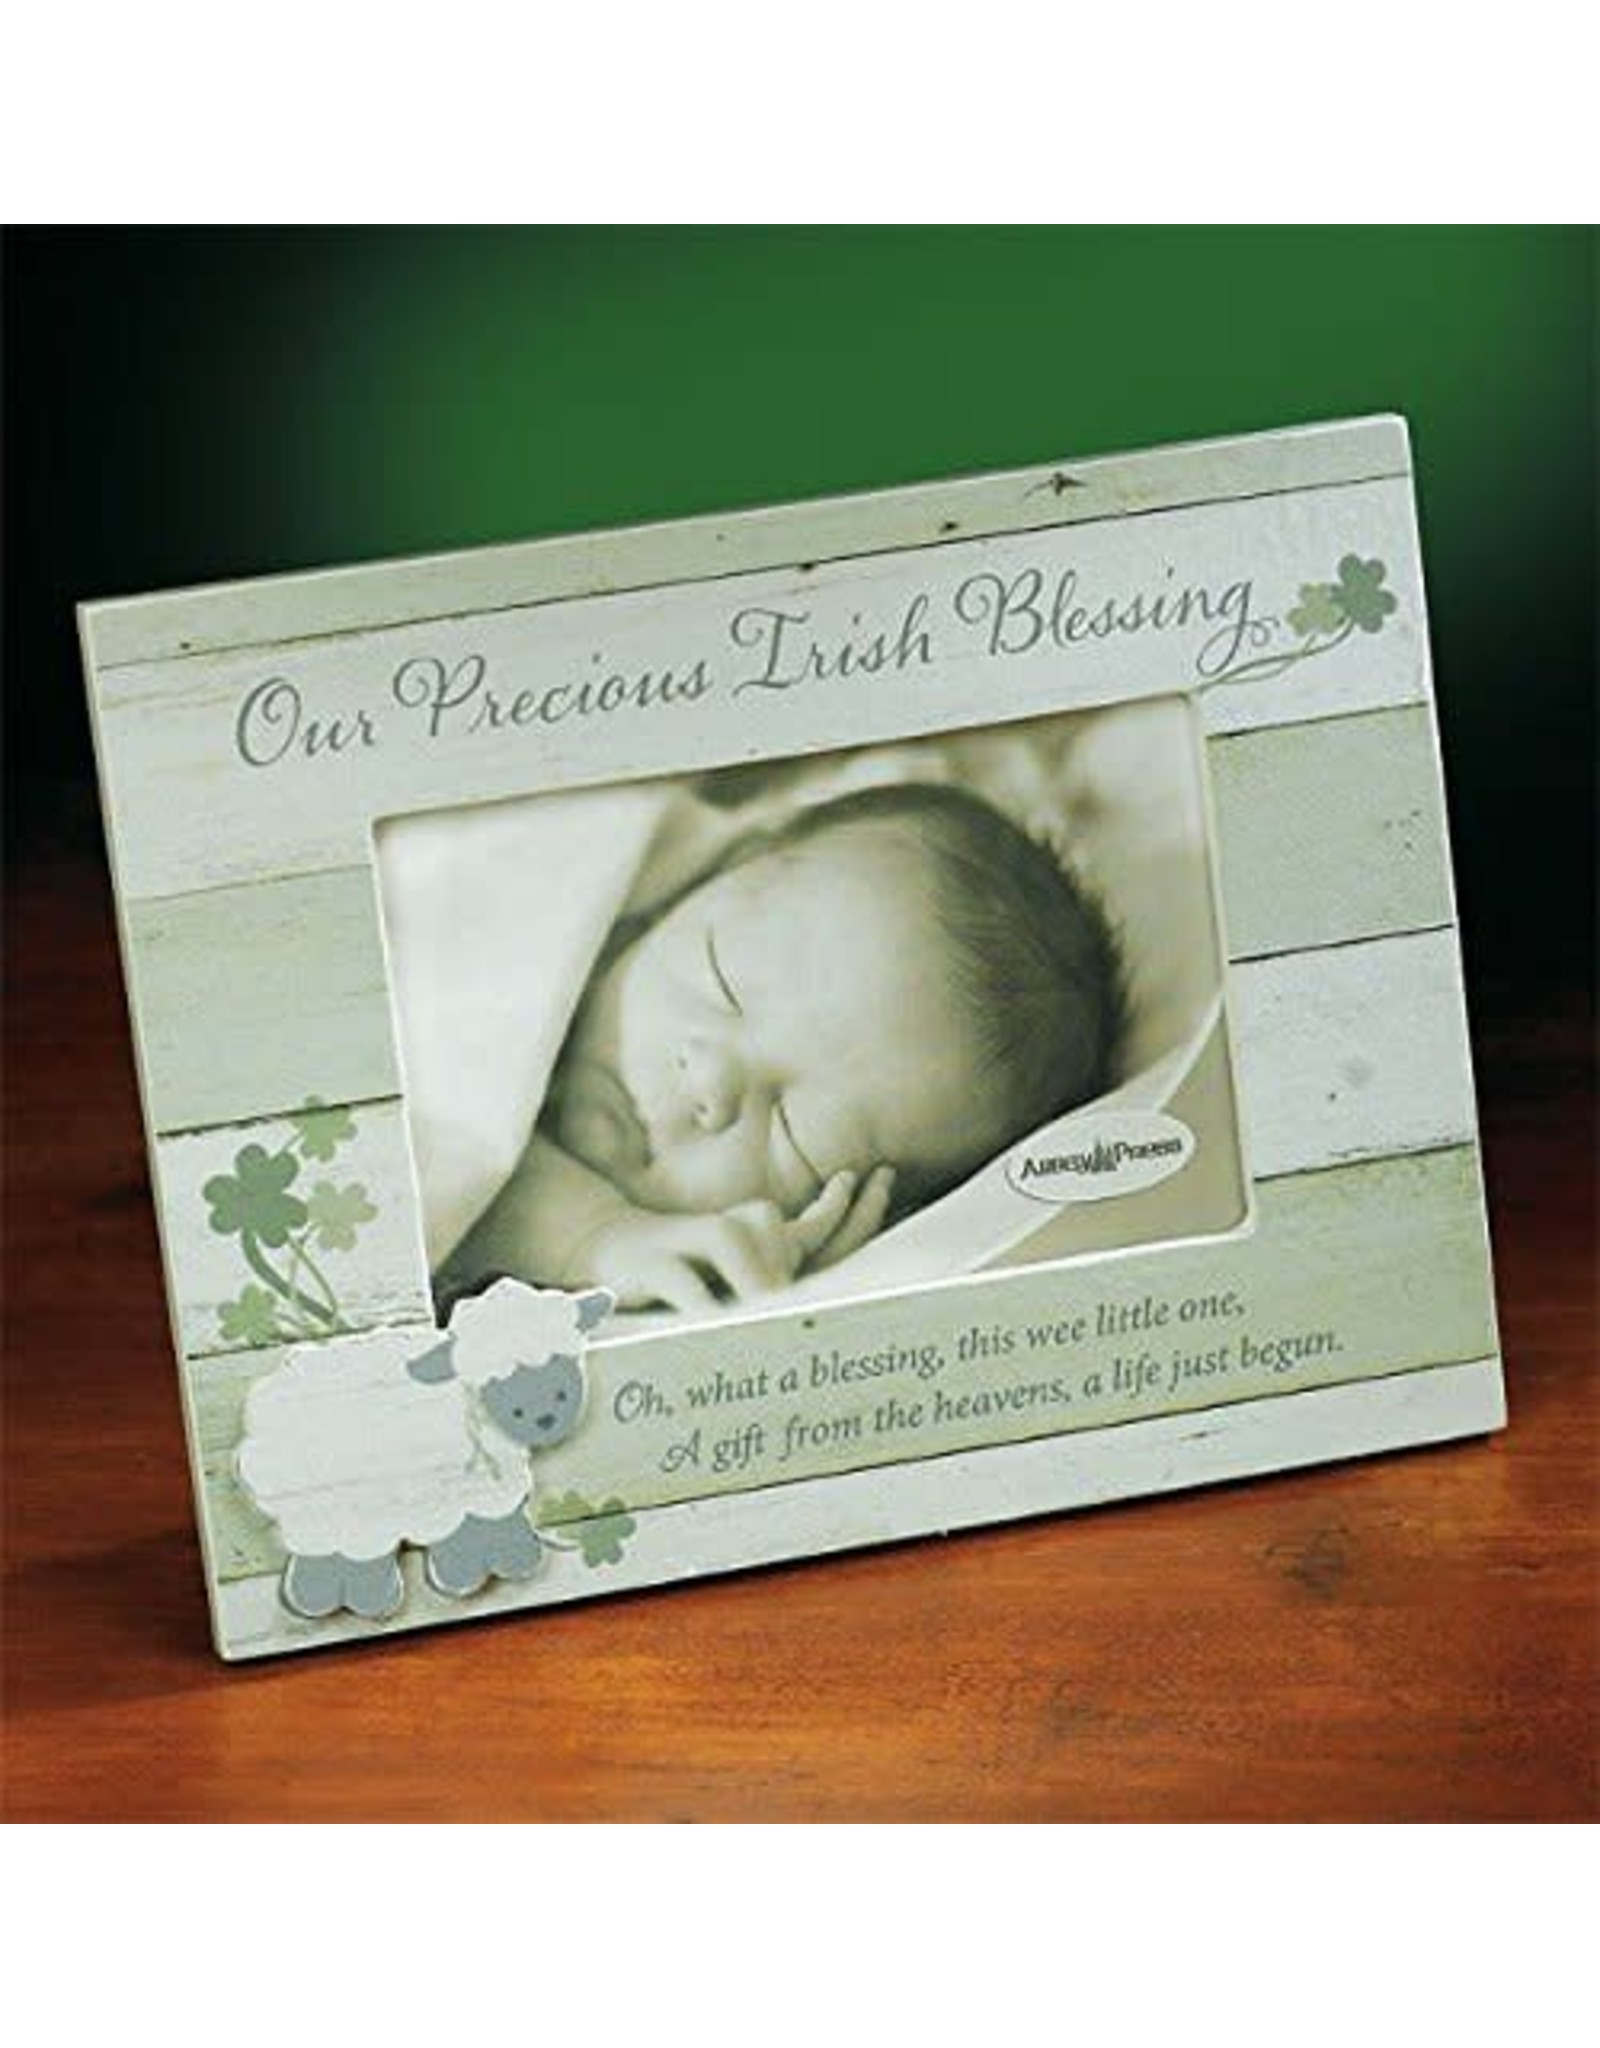 Abbey Press Precious Irish Blessing Frame